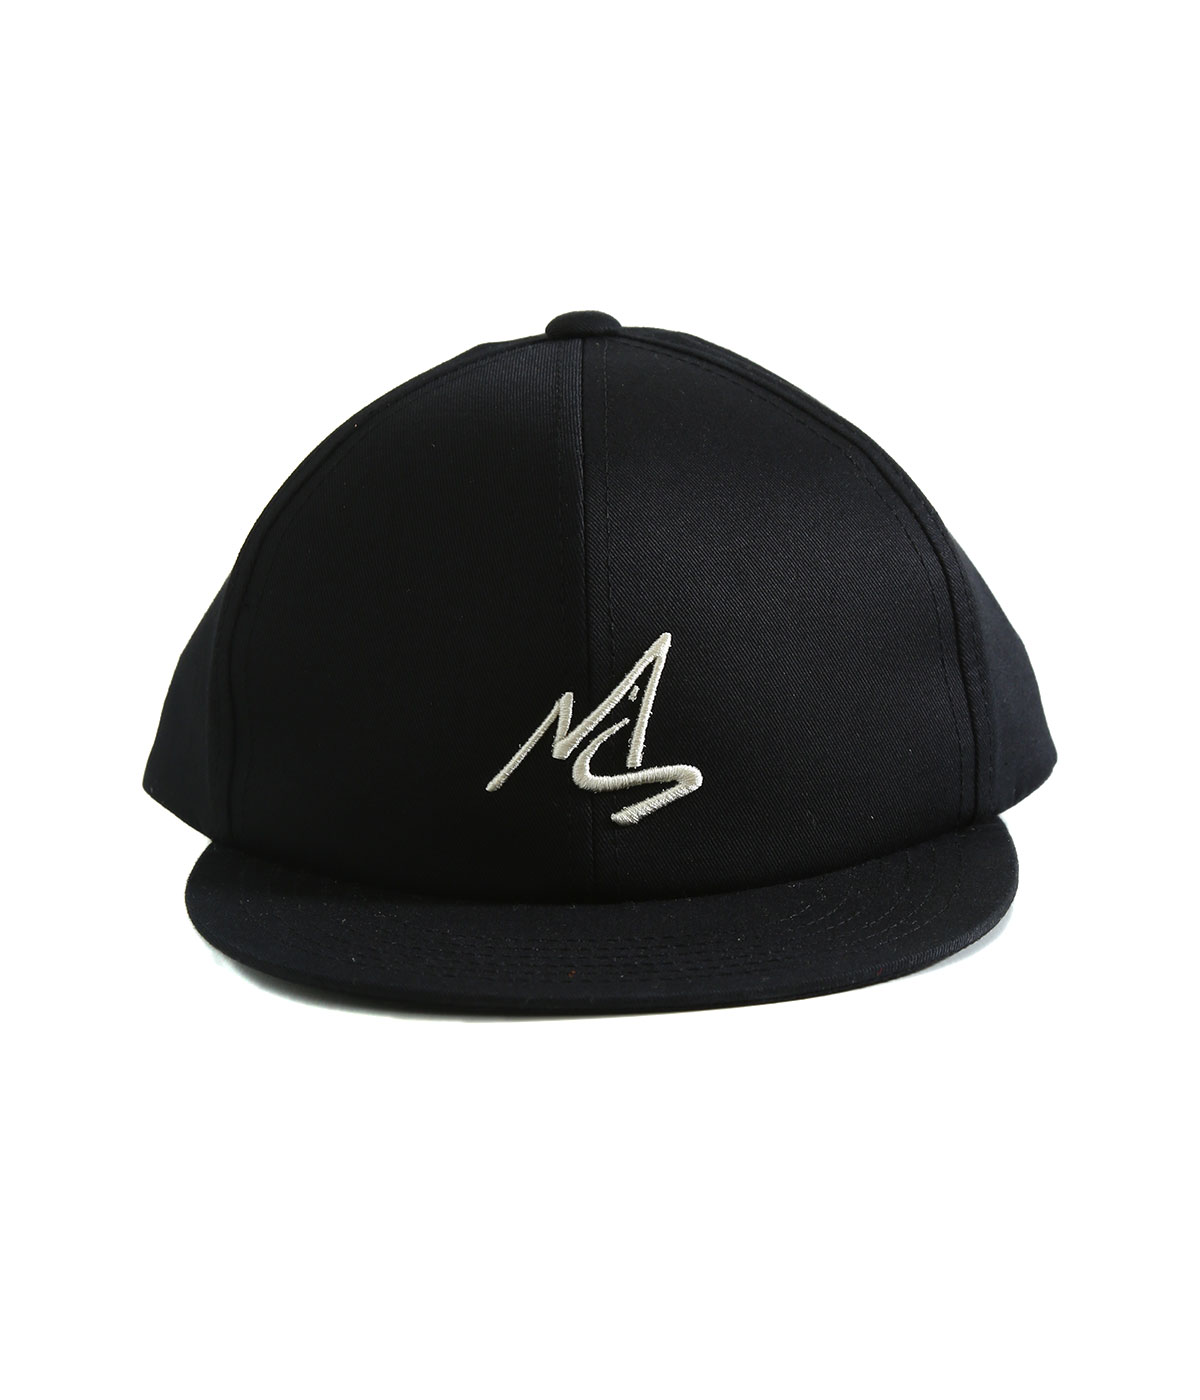 FULL PANEL CAP WHITE